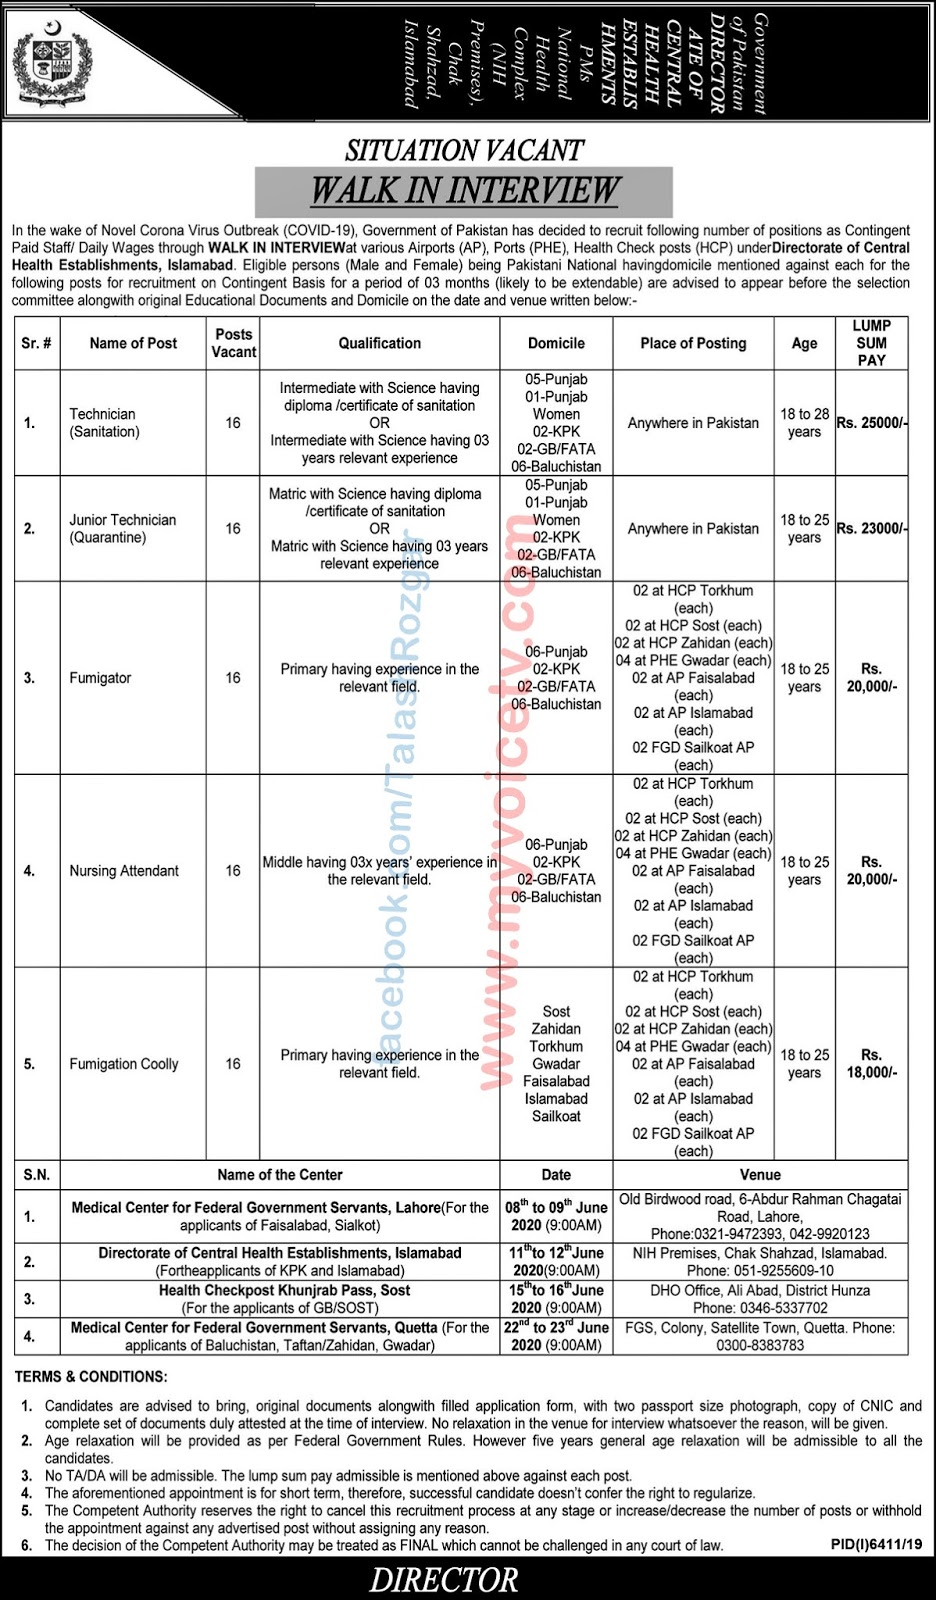 Latest #Jobs #Career_Opportunities at Govt of Pakistan recruits following positions paid staff daily wages for Air Ports, Ports, HCP (80 Posts)  - For details please visit this link